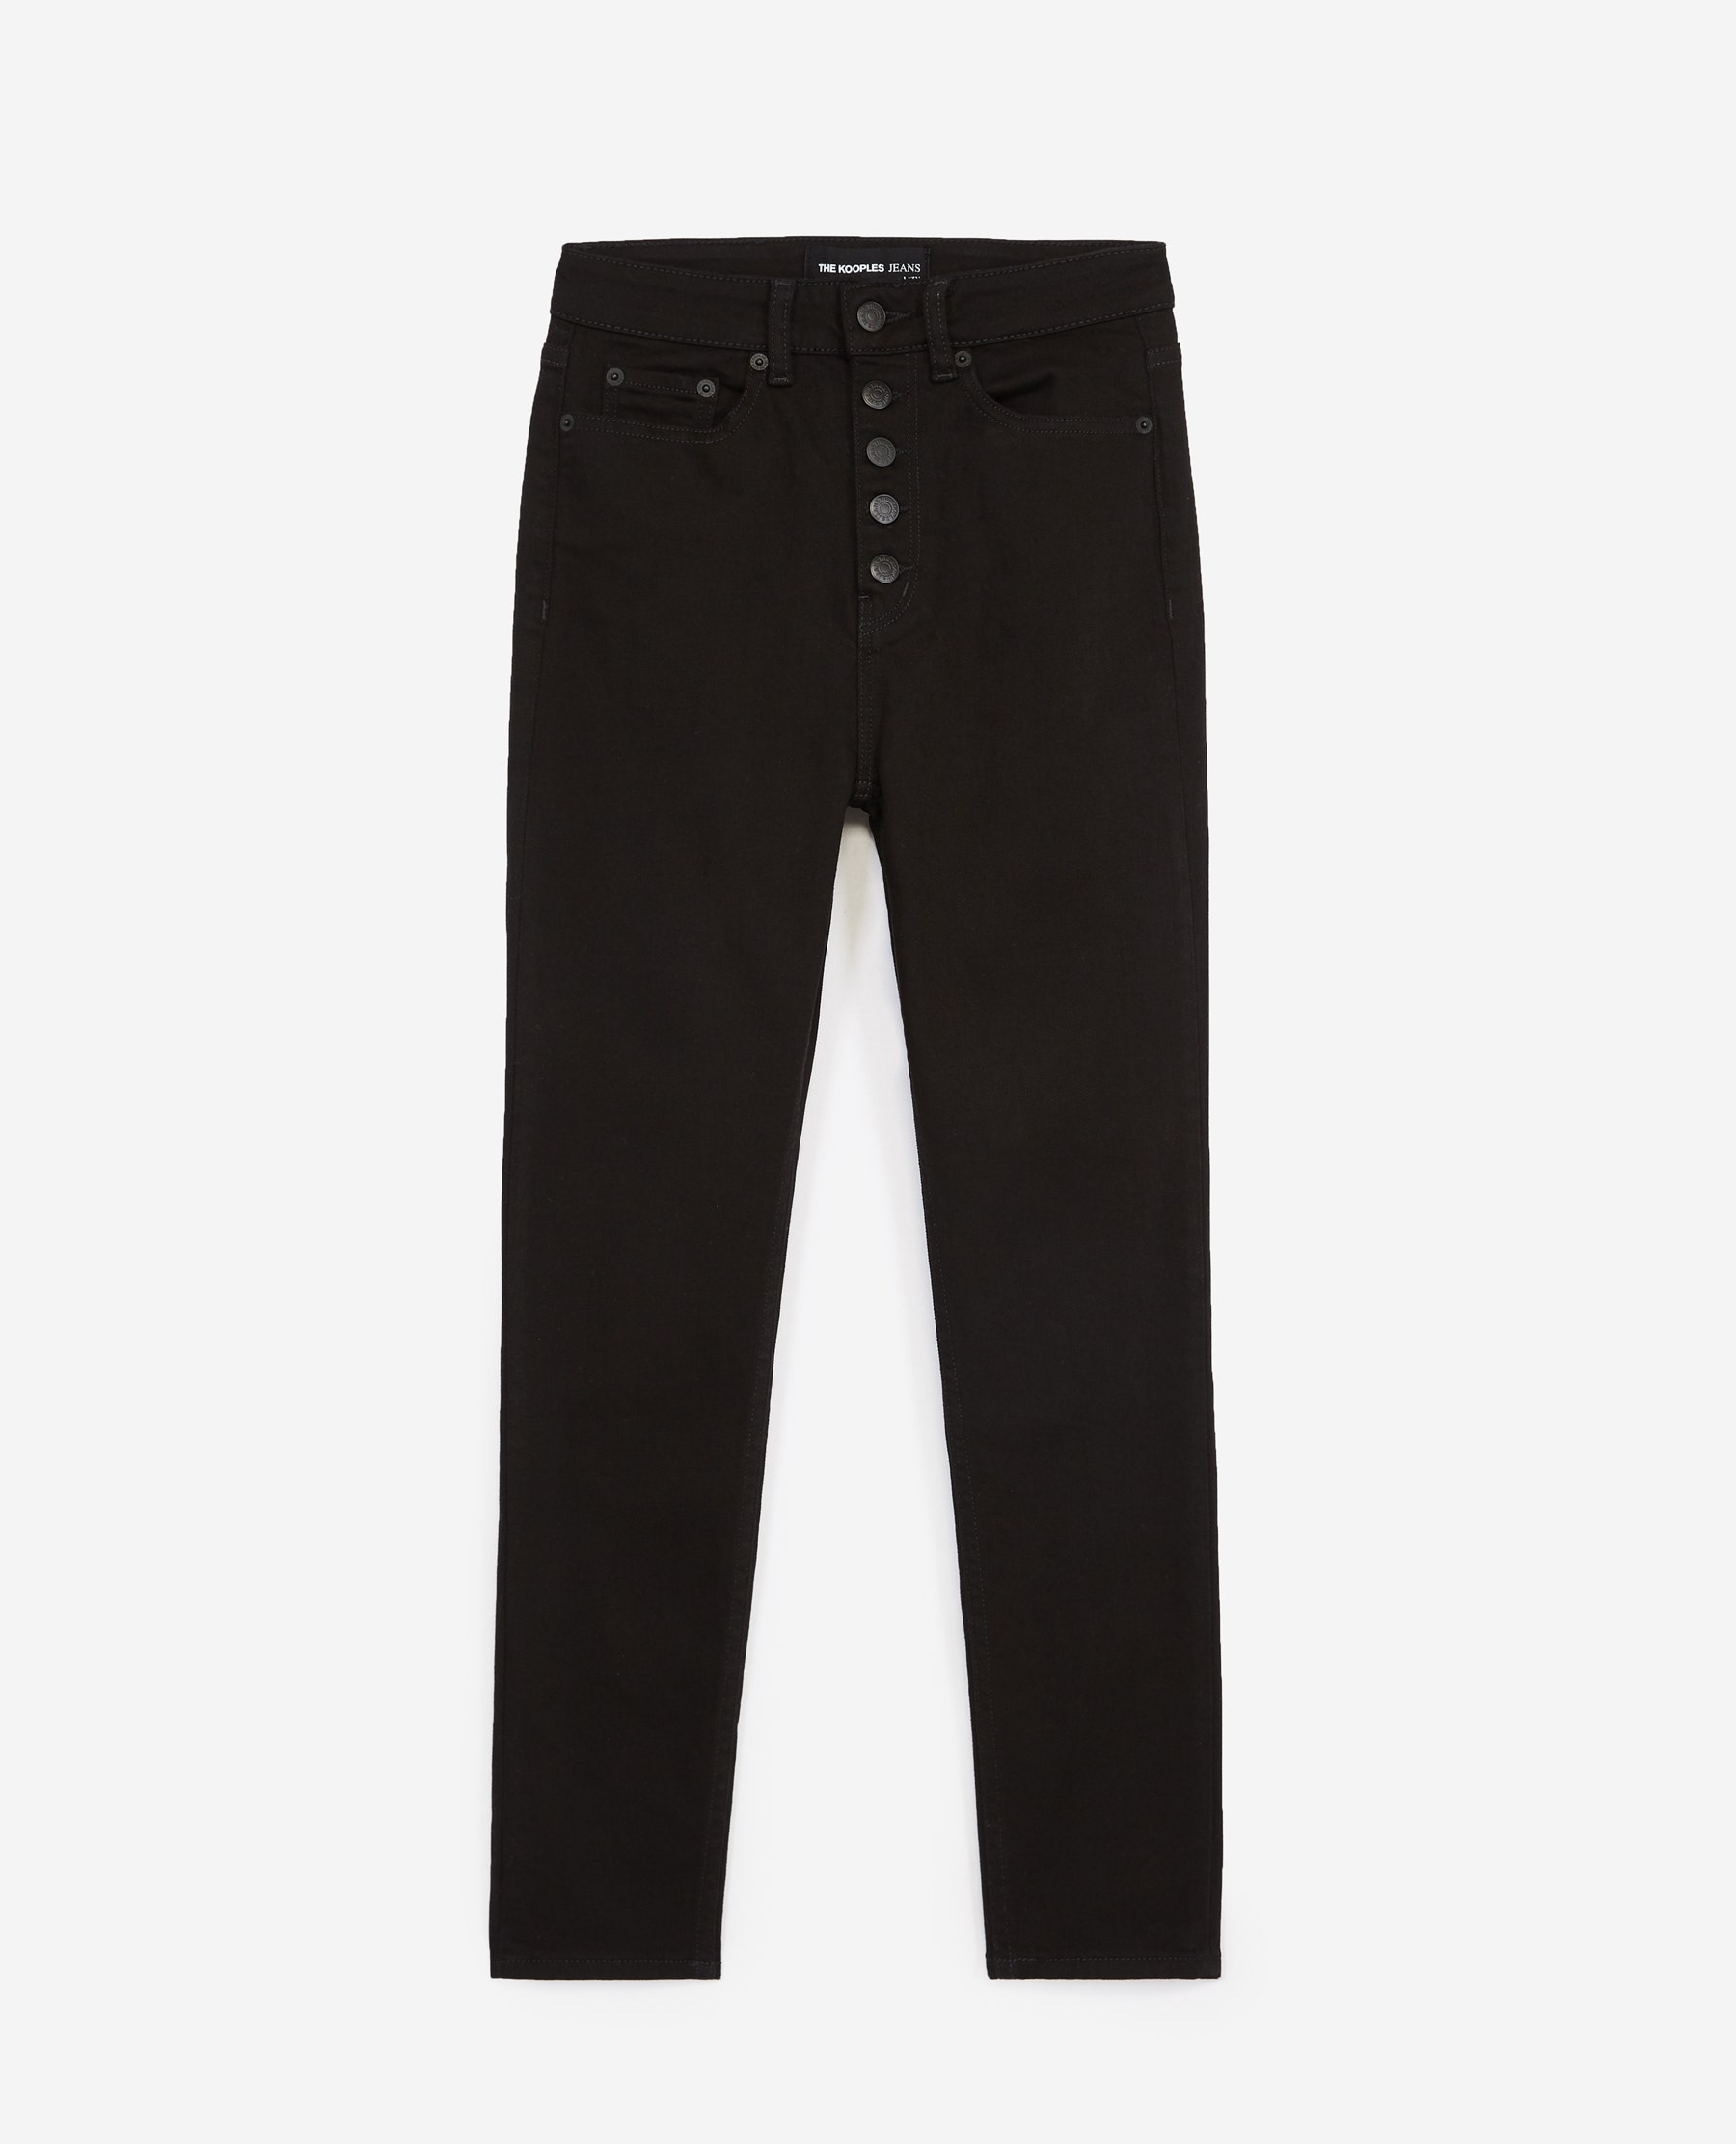 Jean noir boutons slim - The Kooples - Modalova